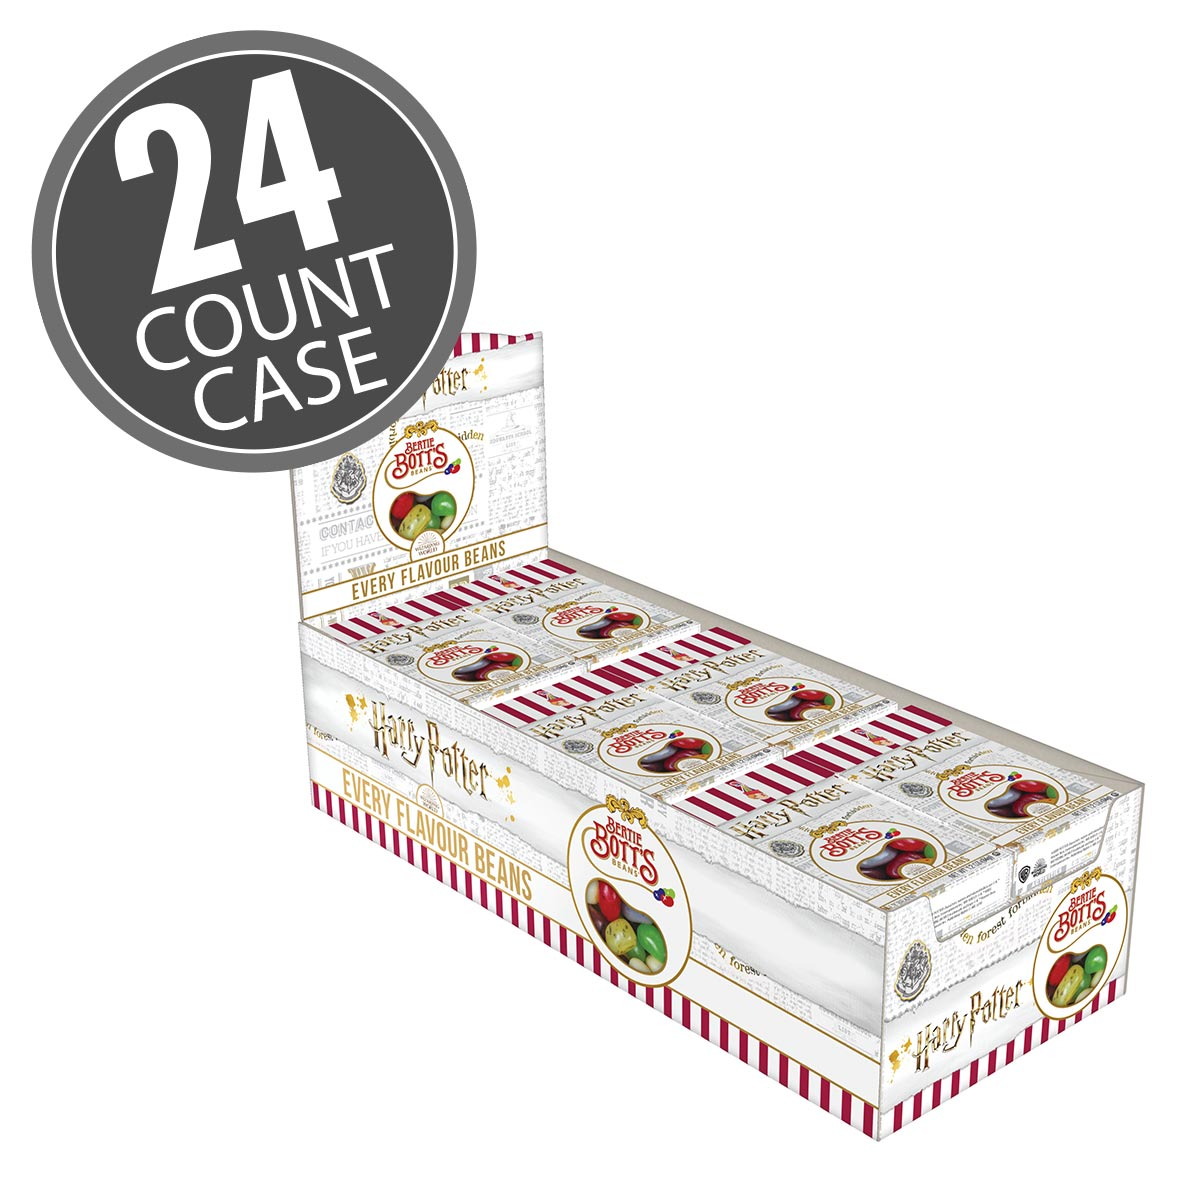 Harry Potter™ Bertie Bott's Every Flavour Beans - 1.2 oz boxes - 24 Count Case